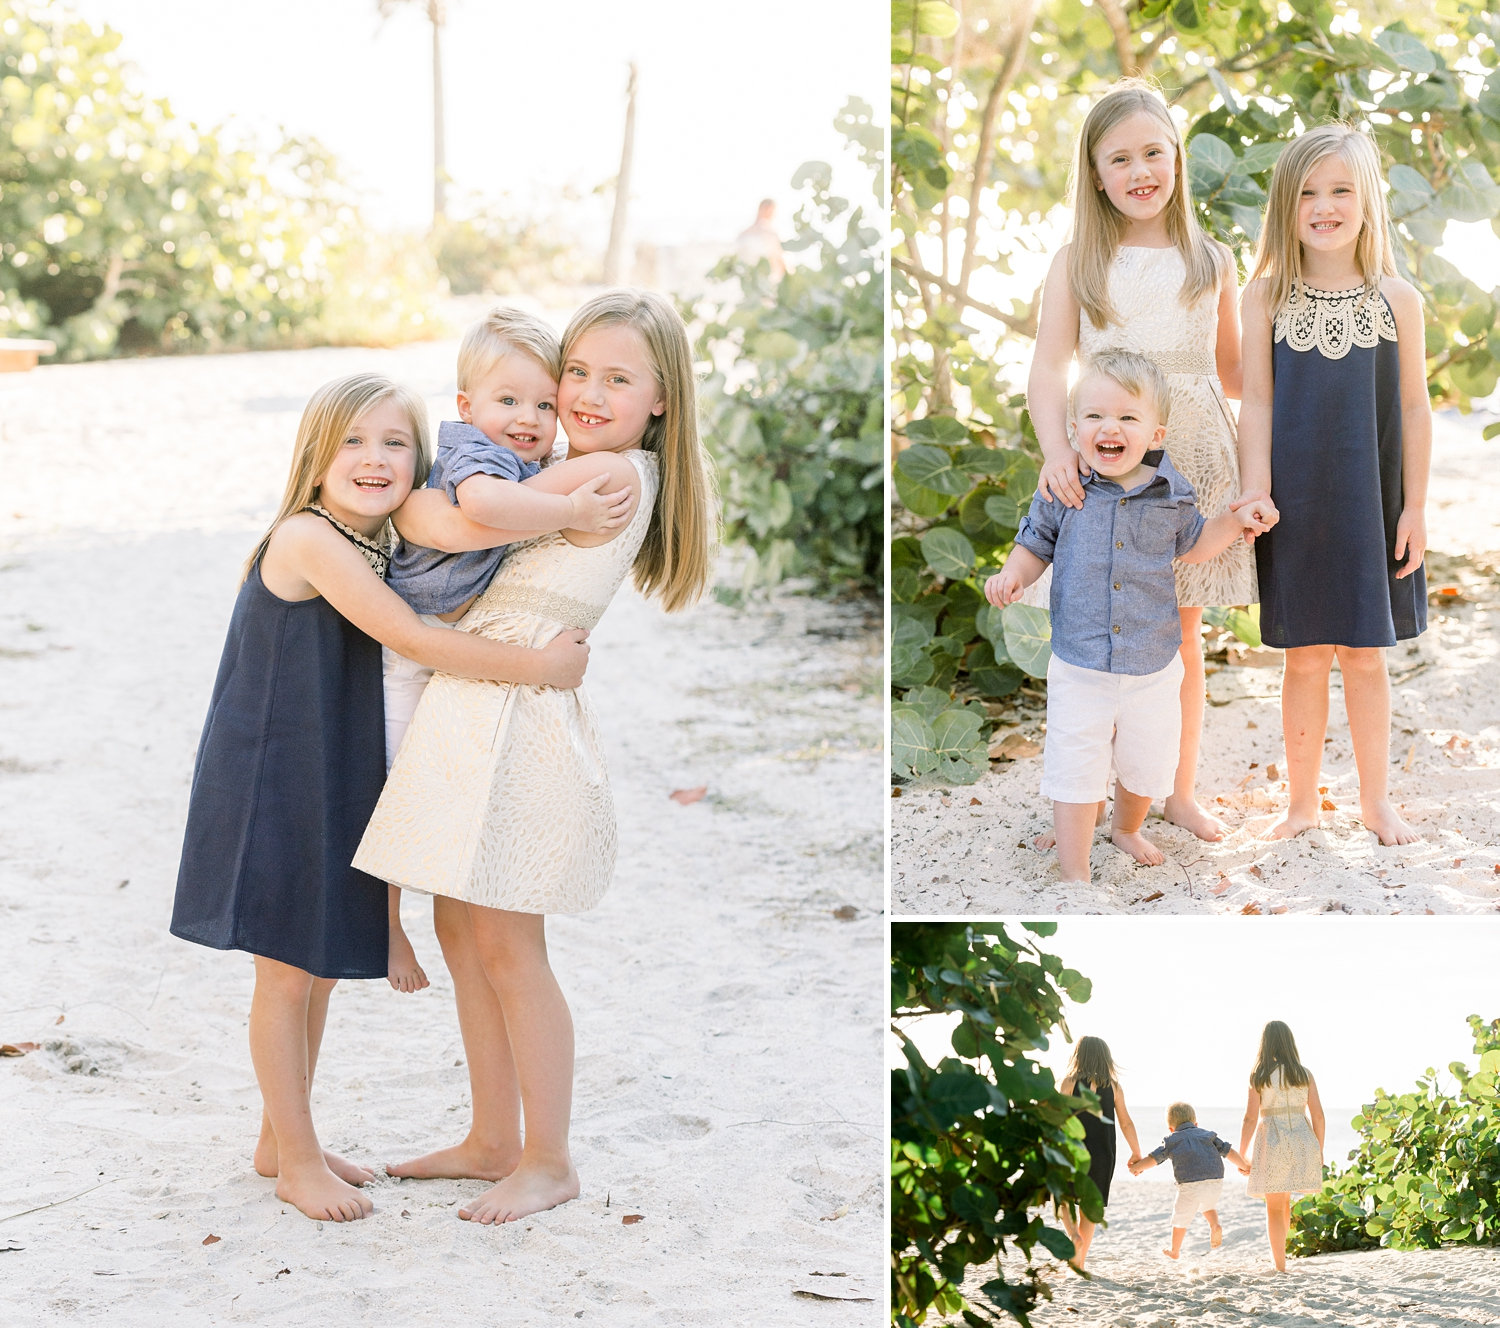 image collage, beach sibling photography, coastal photography, Rya Duncklee